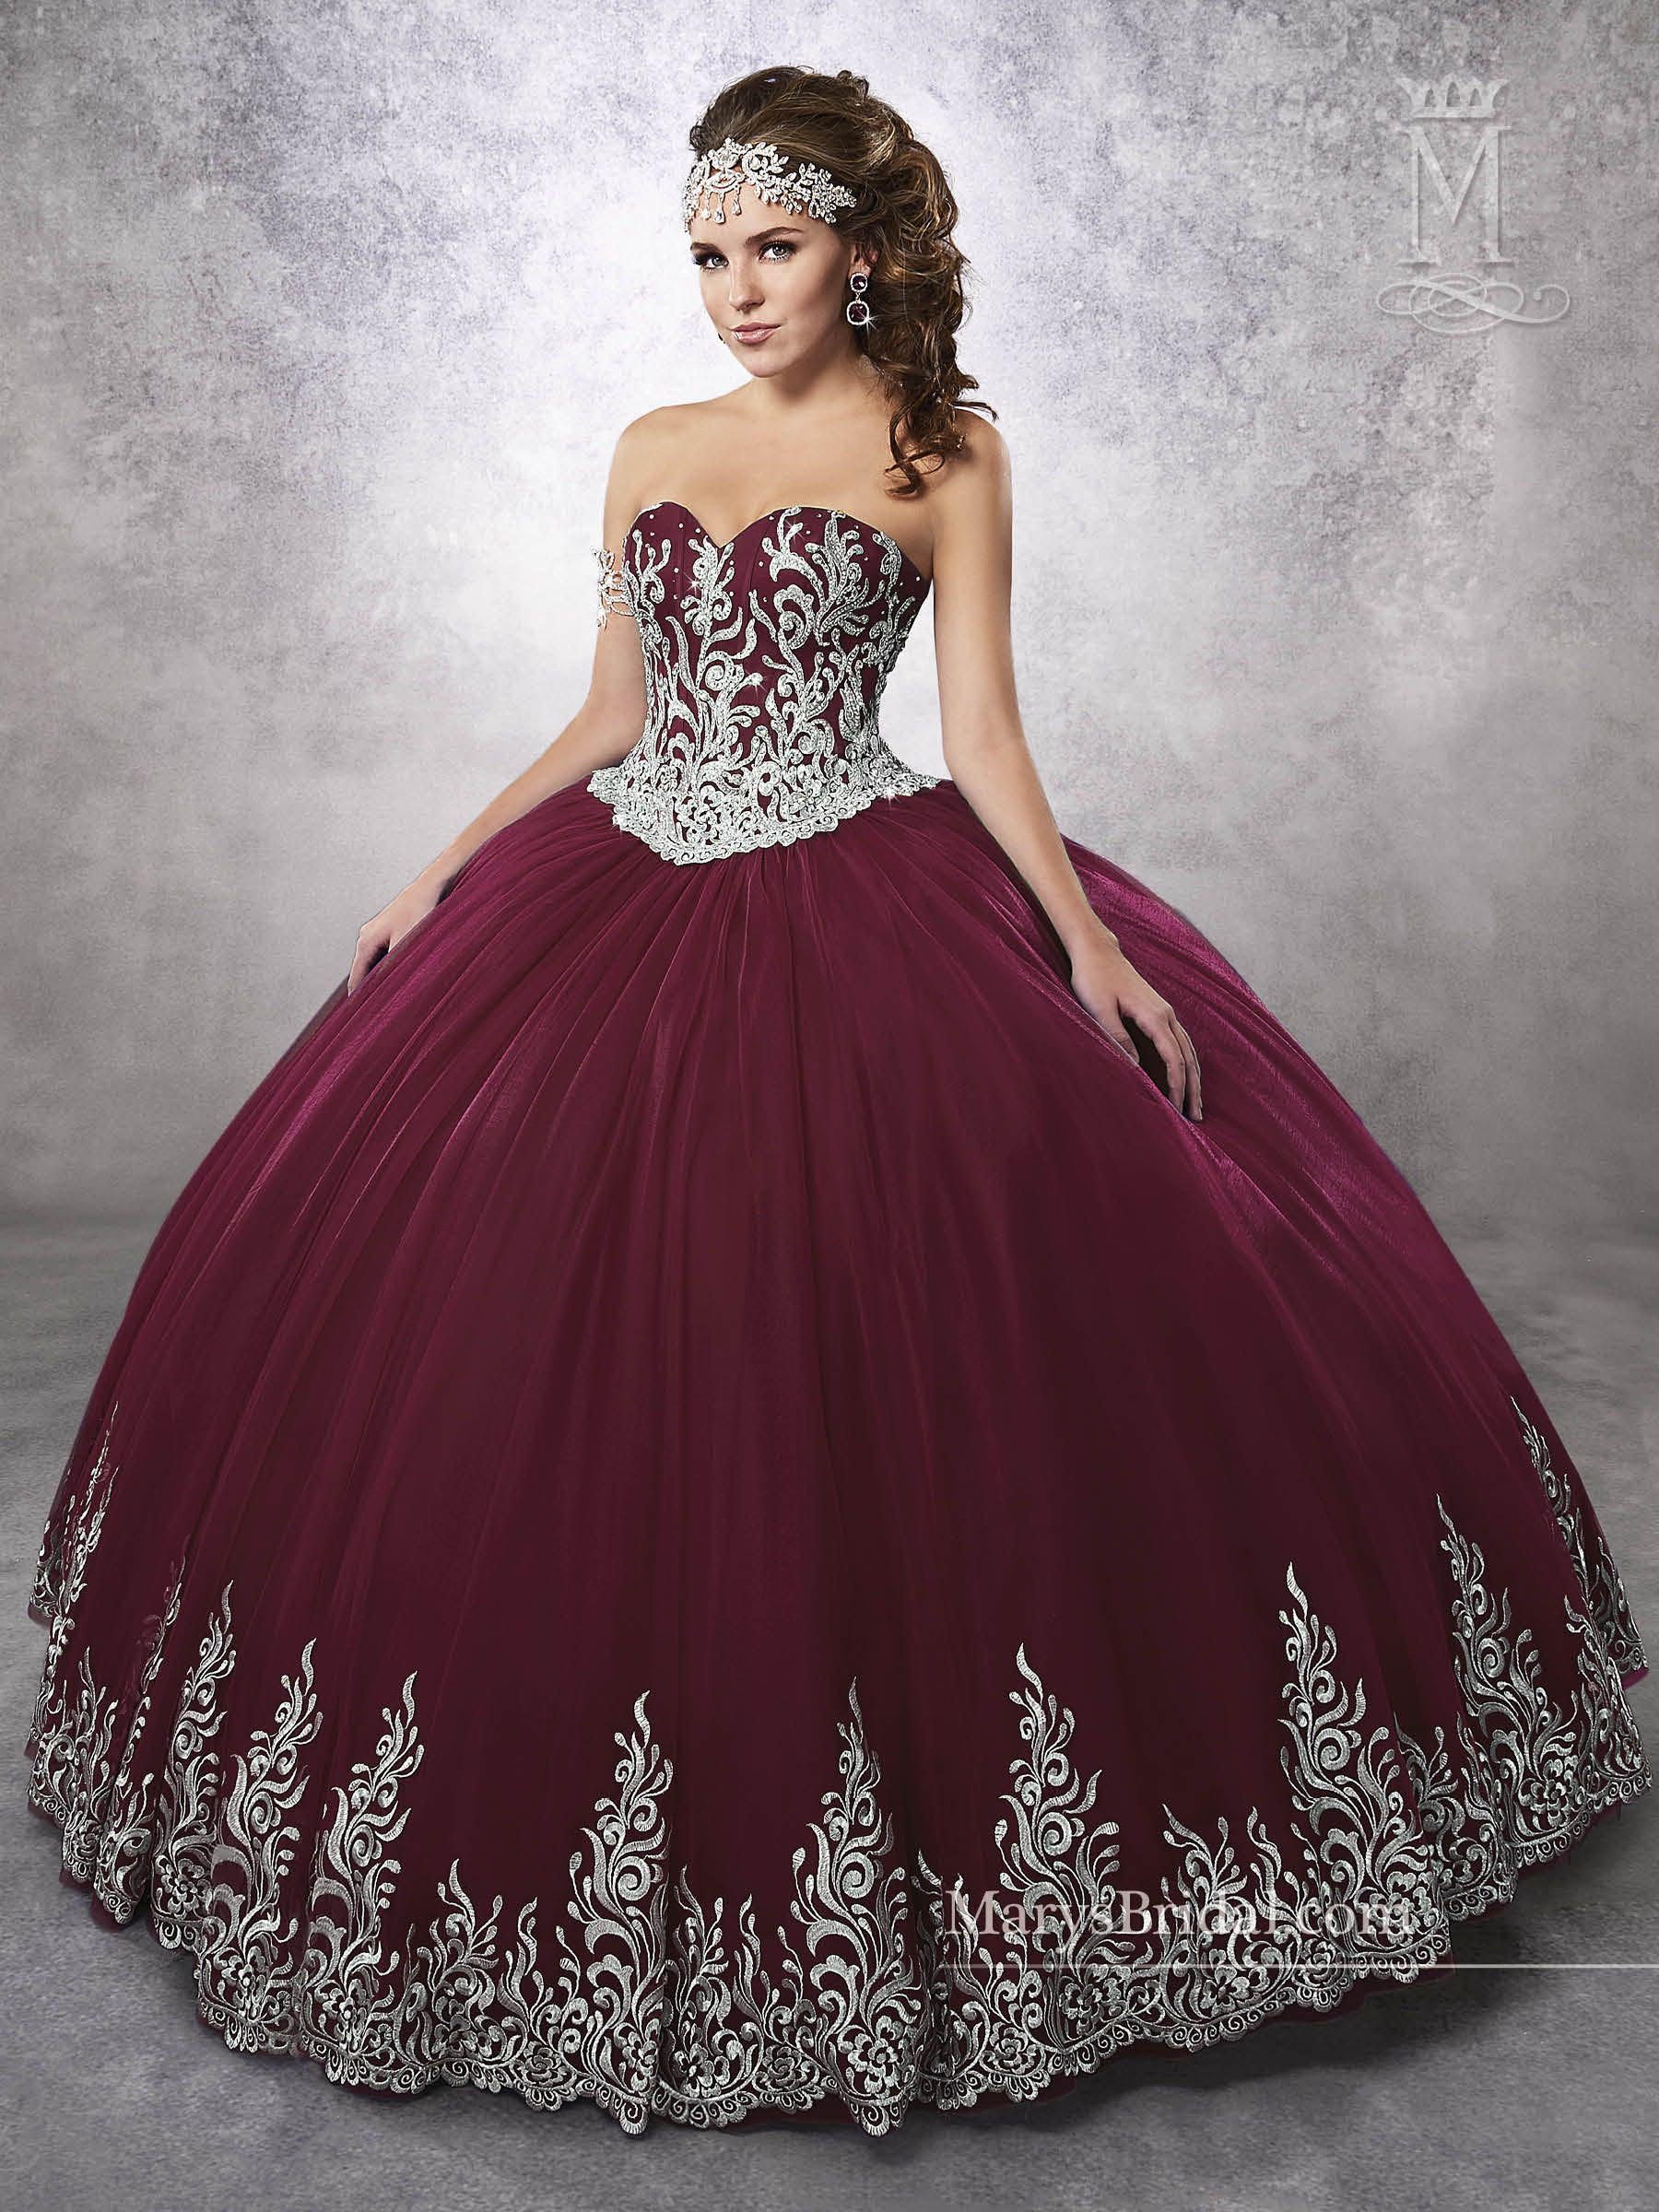 41c80912a6e Quinceanera Sweet 16 Dresses